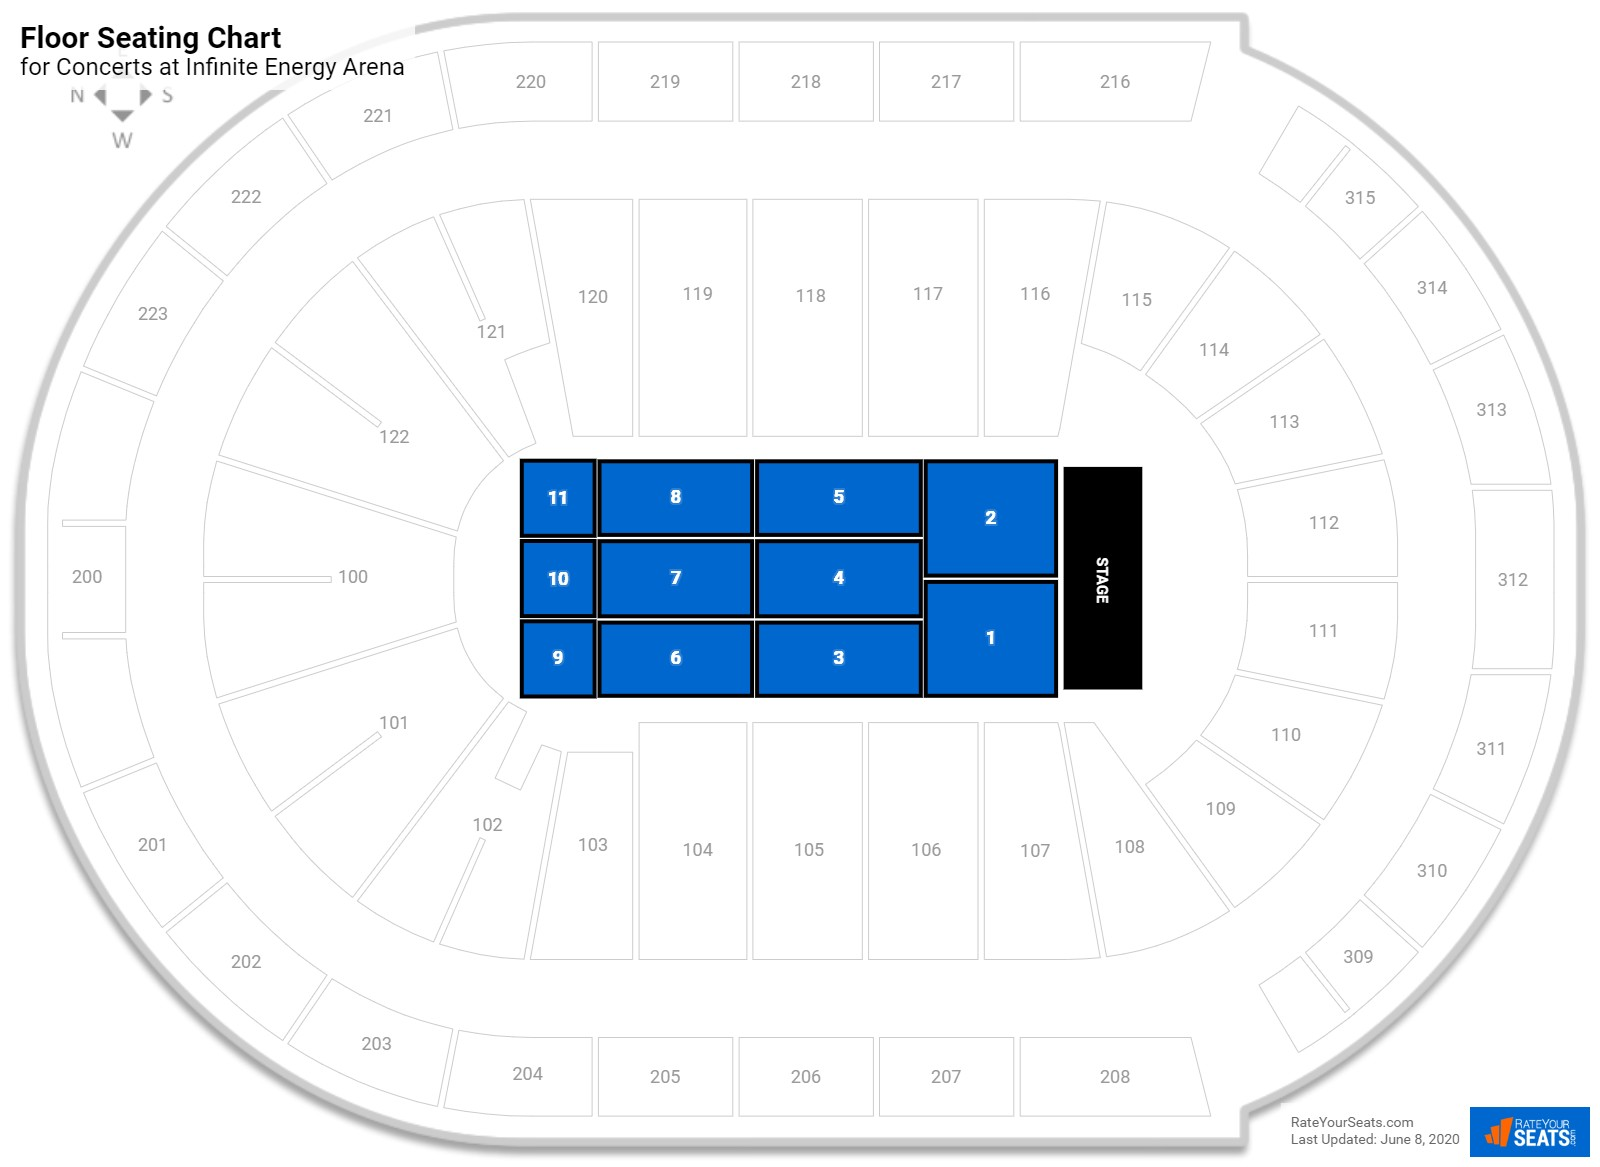 Infinite energy arena seating guide rateyourseats com